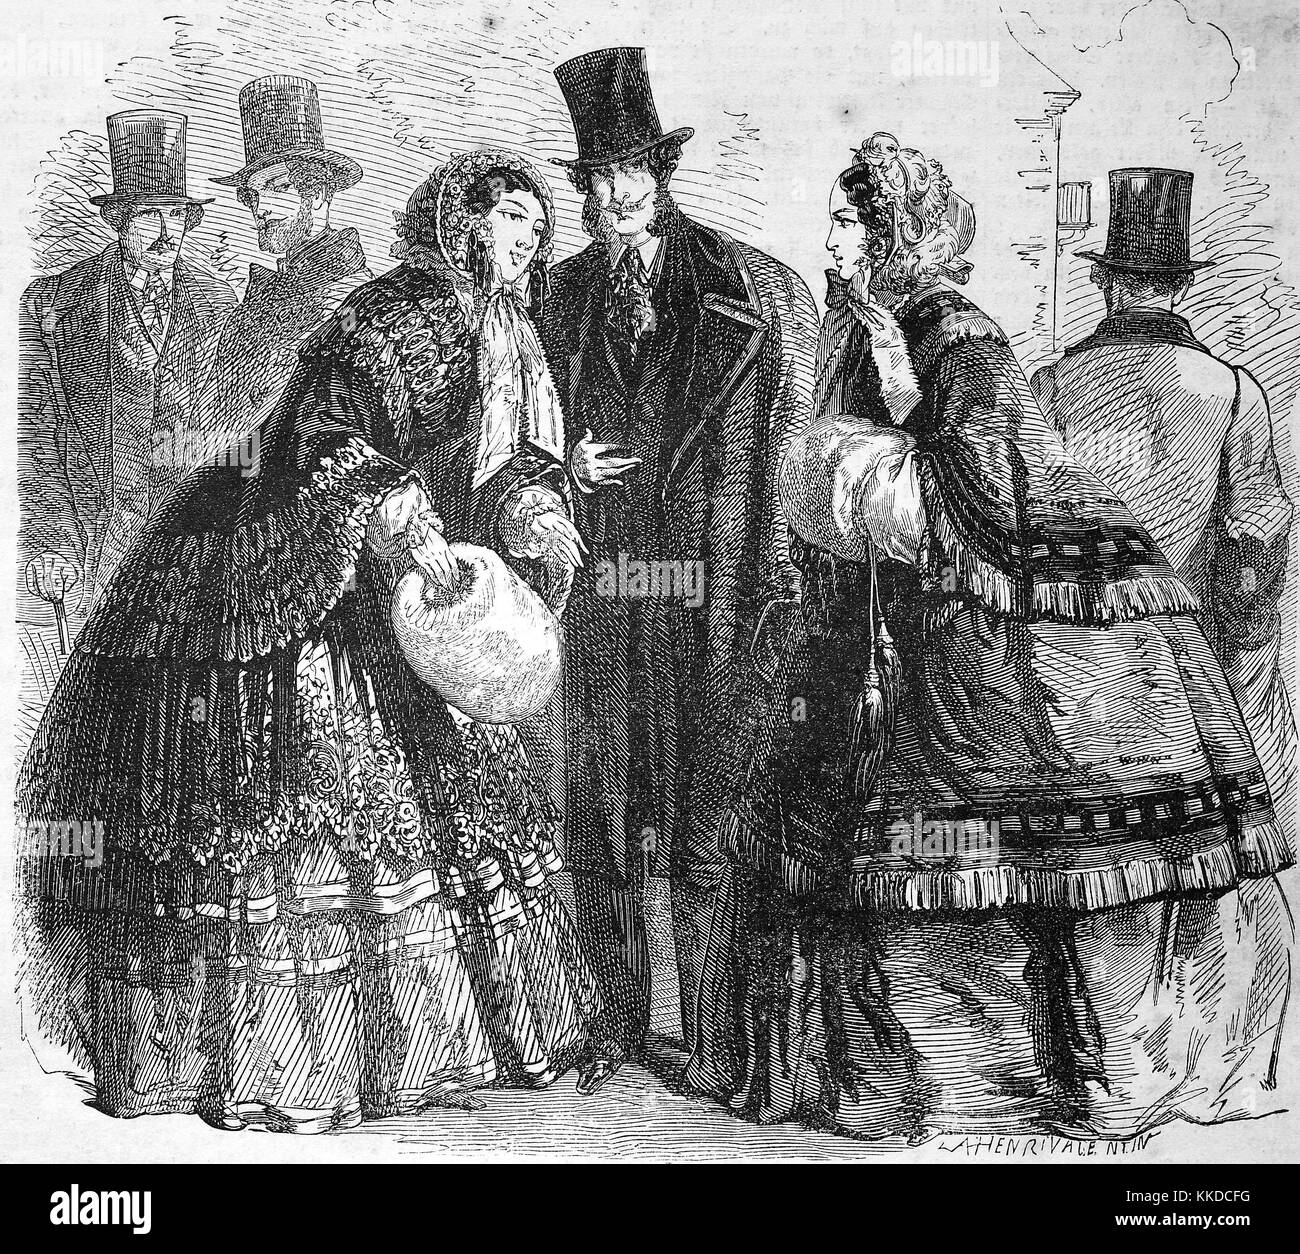 Pictures of the time of 1855. Winter fashion of high society in the middle of the 19th century, Digital improved - Stock Image